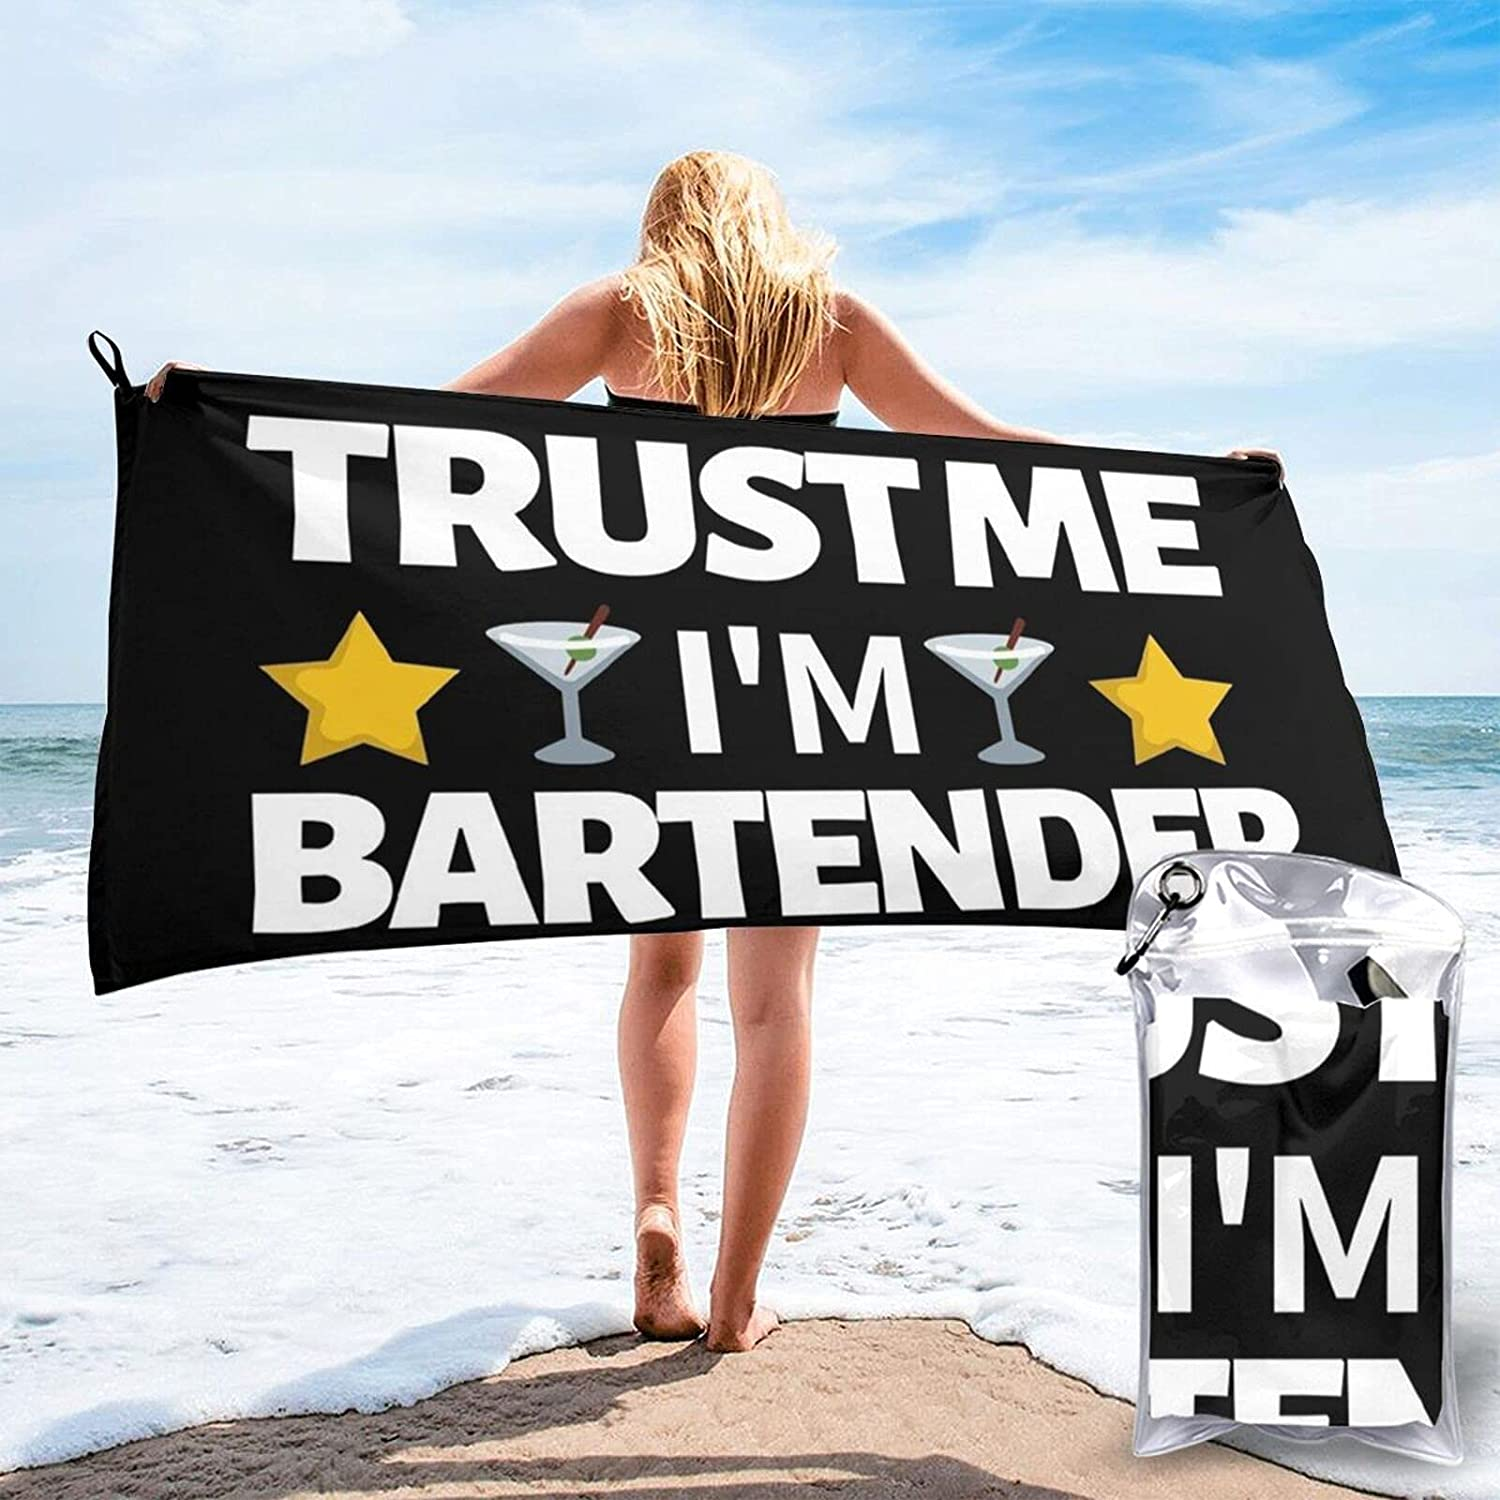 TrustMeI'mABartender Quick Drying Beach favorite Towel Carrying Ranking integrated 1st place a Ba with